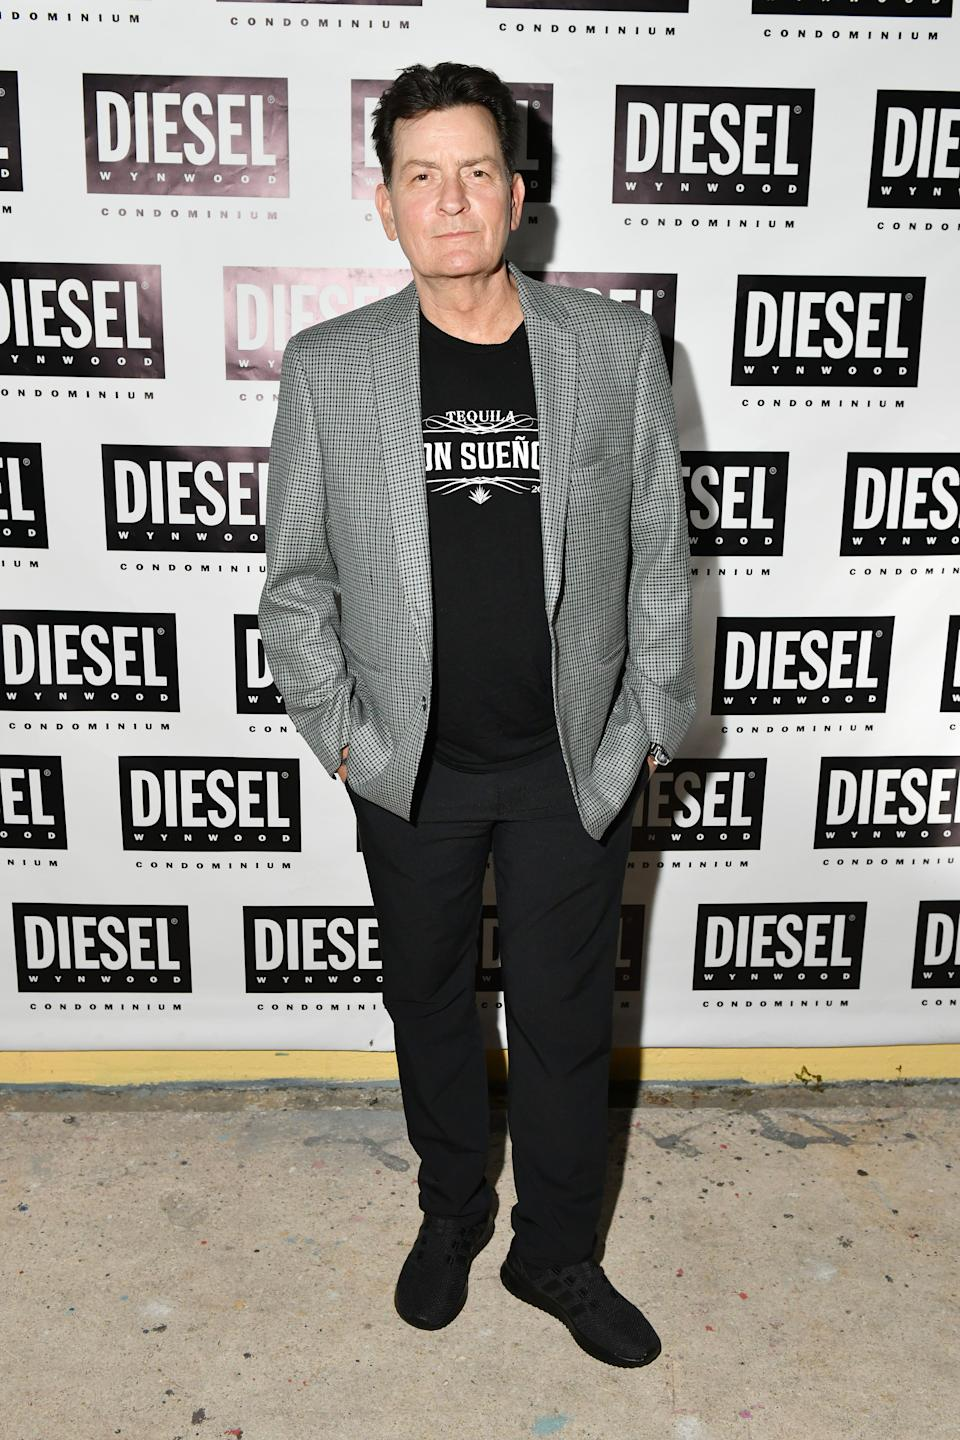 MIAMI, FLORIDA - DECEMBER 04: Charlie Sheen attends as DIESEL celebrates the exclusive launch of DIESEL Wynwood 28, their first residential building, with a DJ set by Amrit at Barter on December 04, 2019 in Miami, Florida. (Photo by Craig Barritt/Getty Images for Diesel)